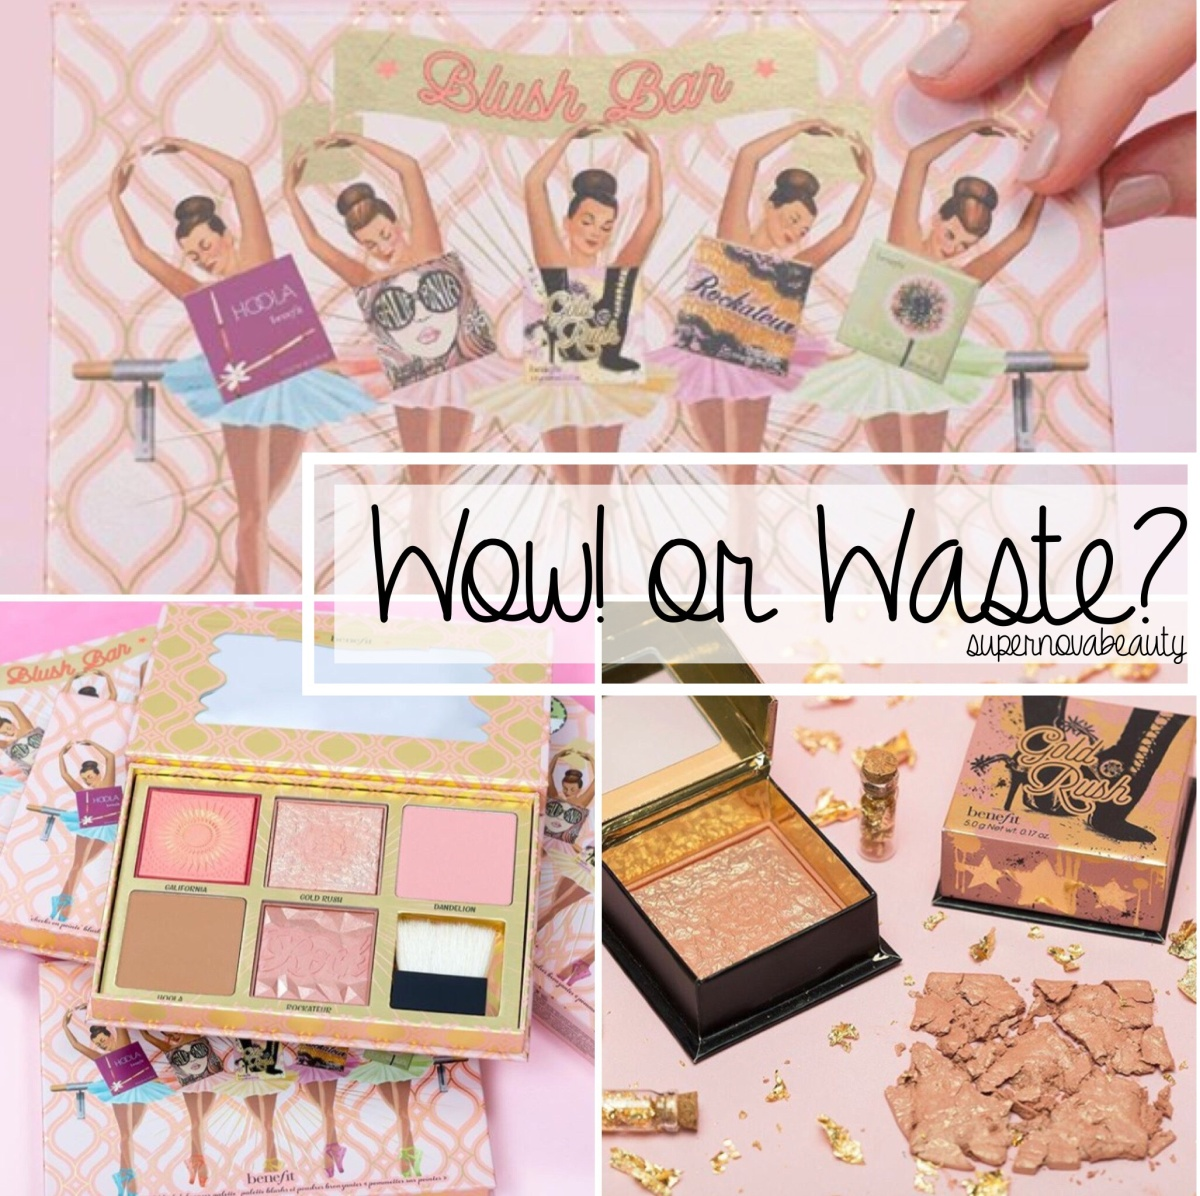 Wow! or Waste? Benefit Cosmetics Blush Bar Cheek Palette